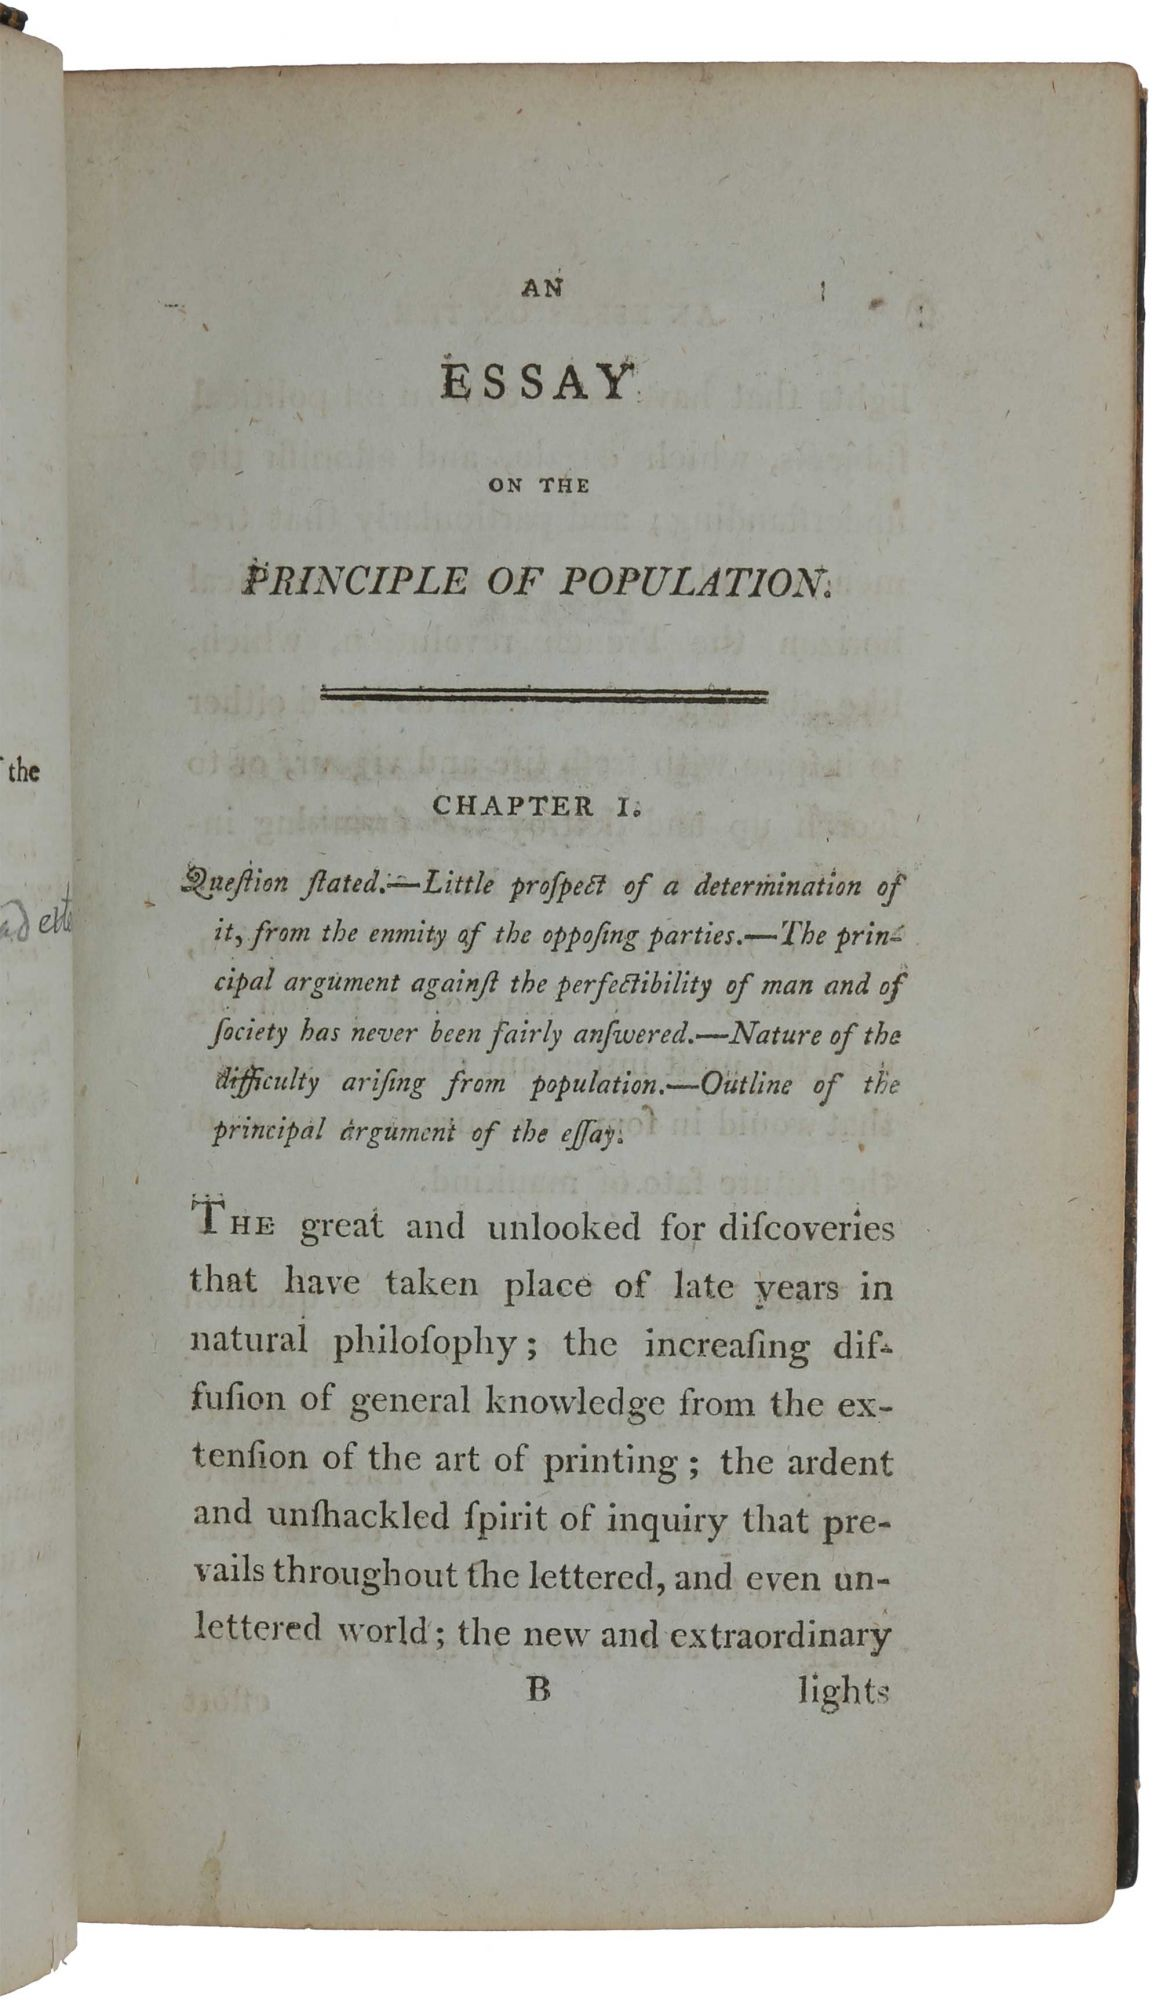 malthuss essay on the principle of population His an essay on the principle of population observed that sooner or later population will be checked by famine and disease, leading to what is known as a malthusian catastrophe he wrote in opposition to the popular vi the rev thomas robert malthus frs was an english cleric and scholar, influential in the fields of political economy and.